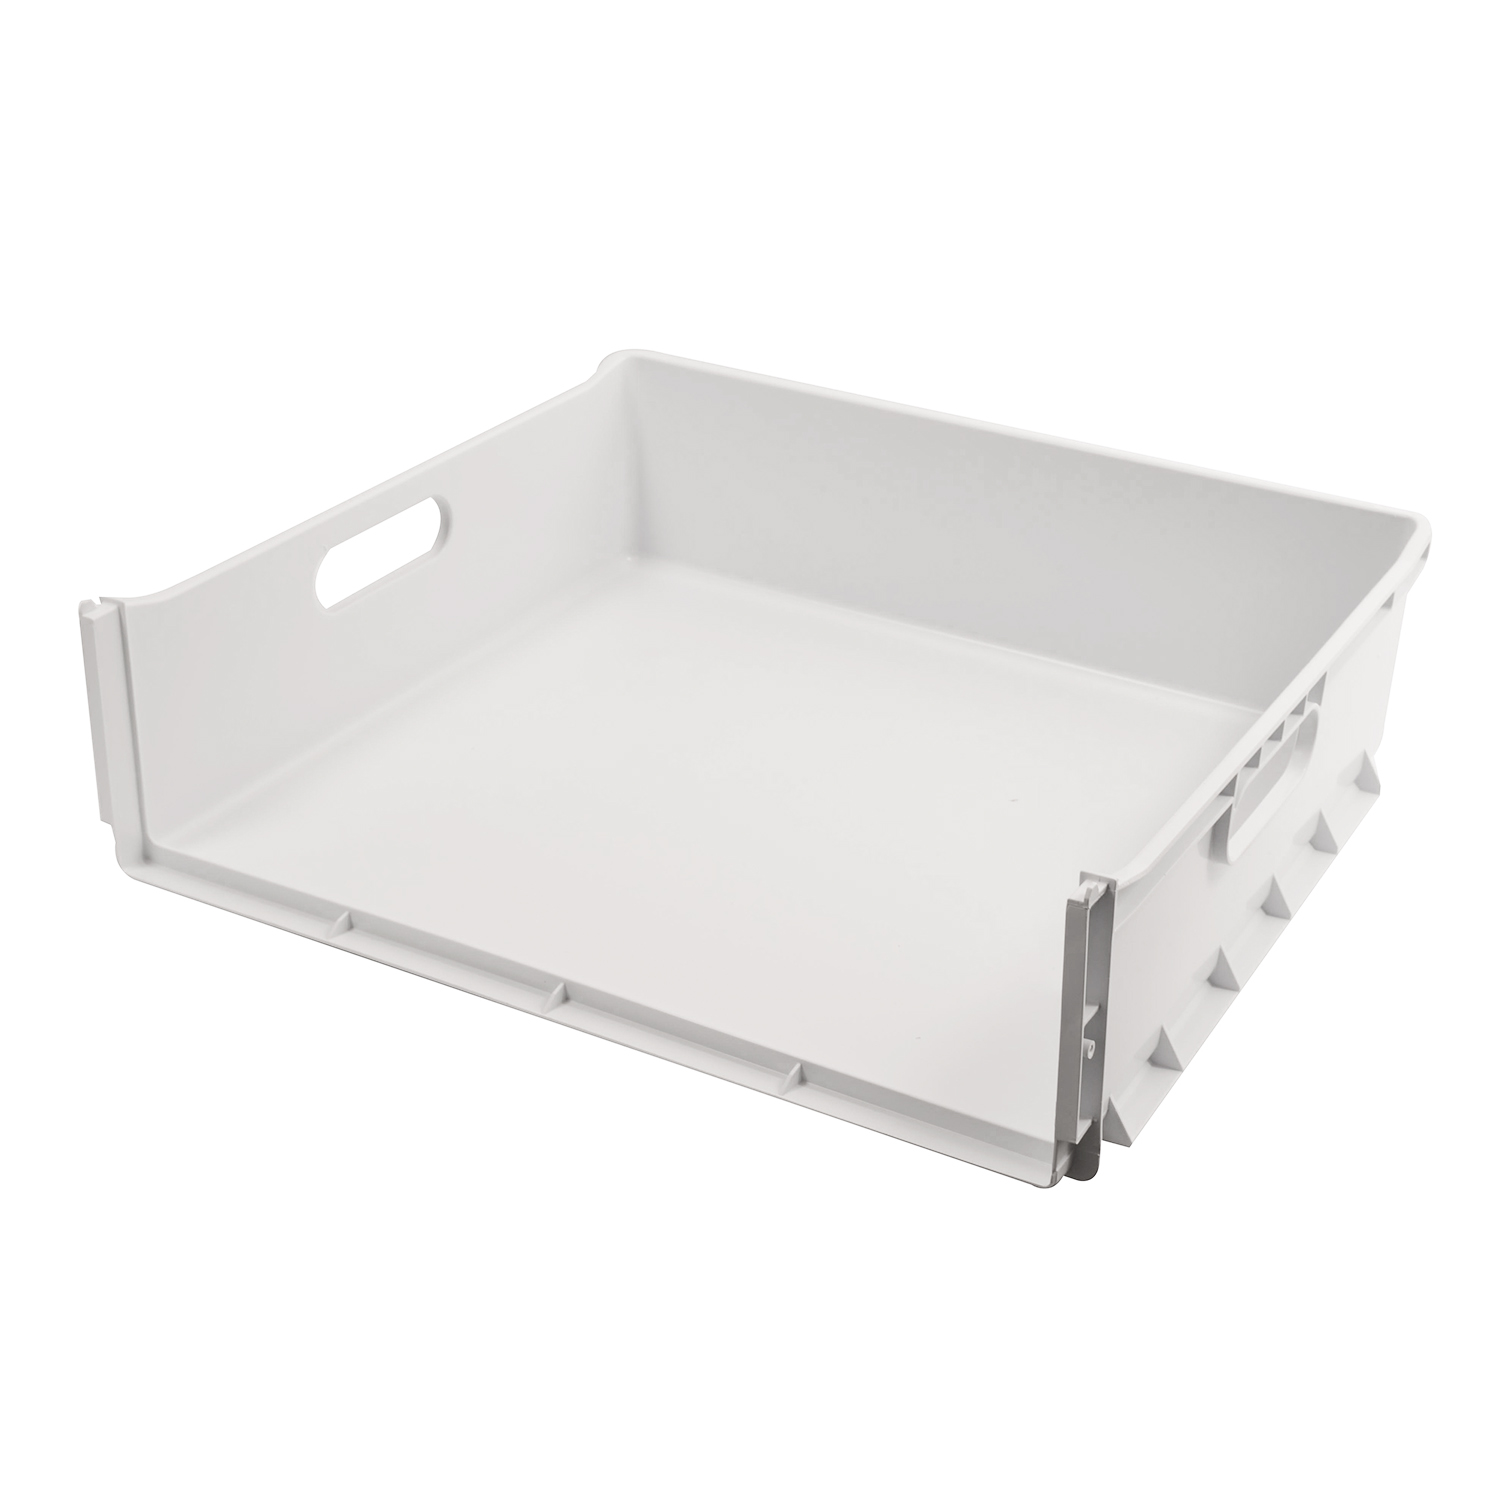 Description of FREEZER DRAWER 434X394X123